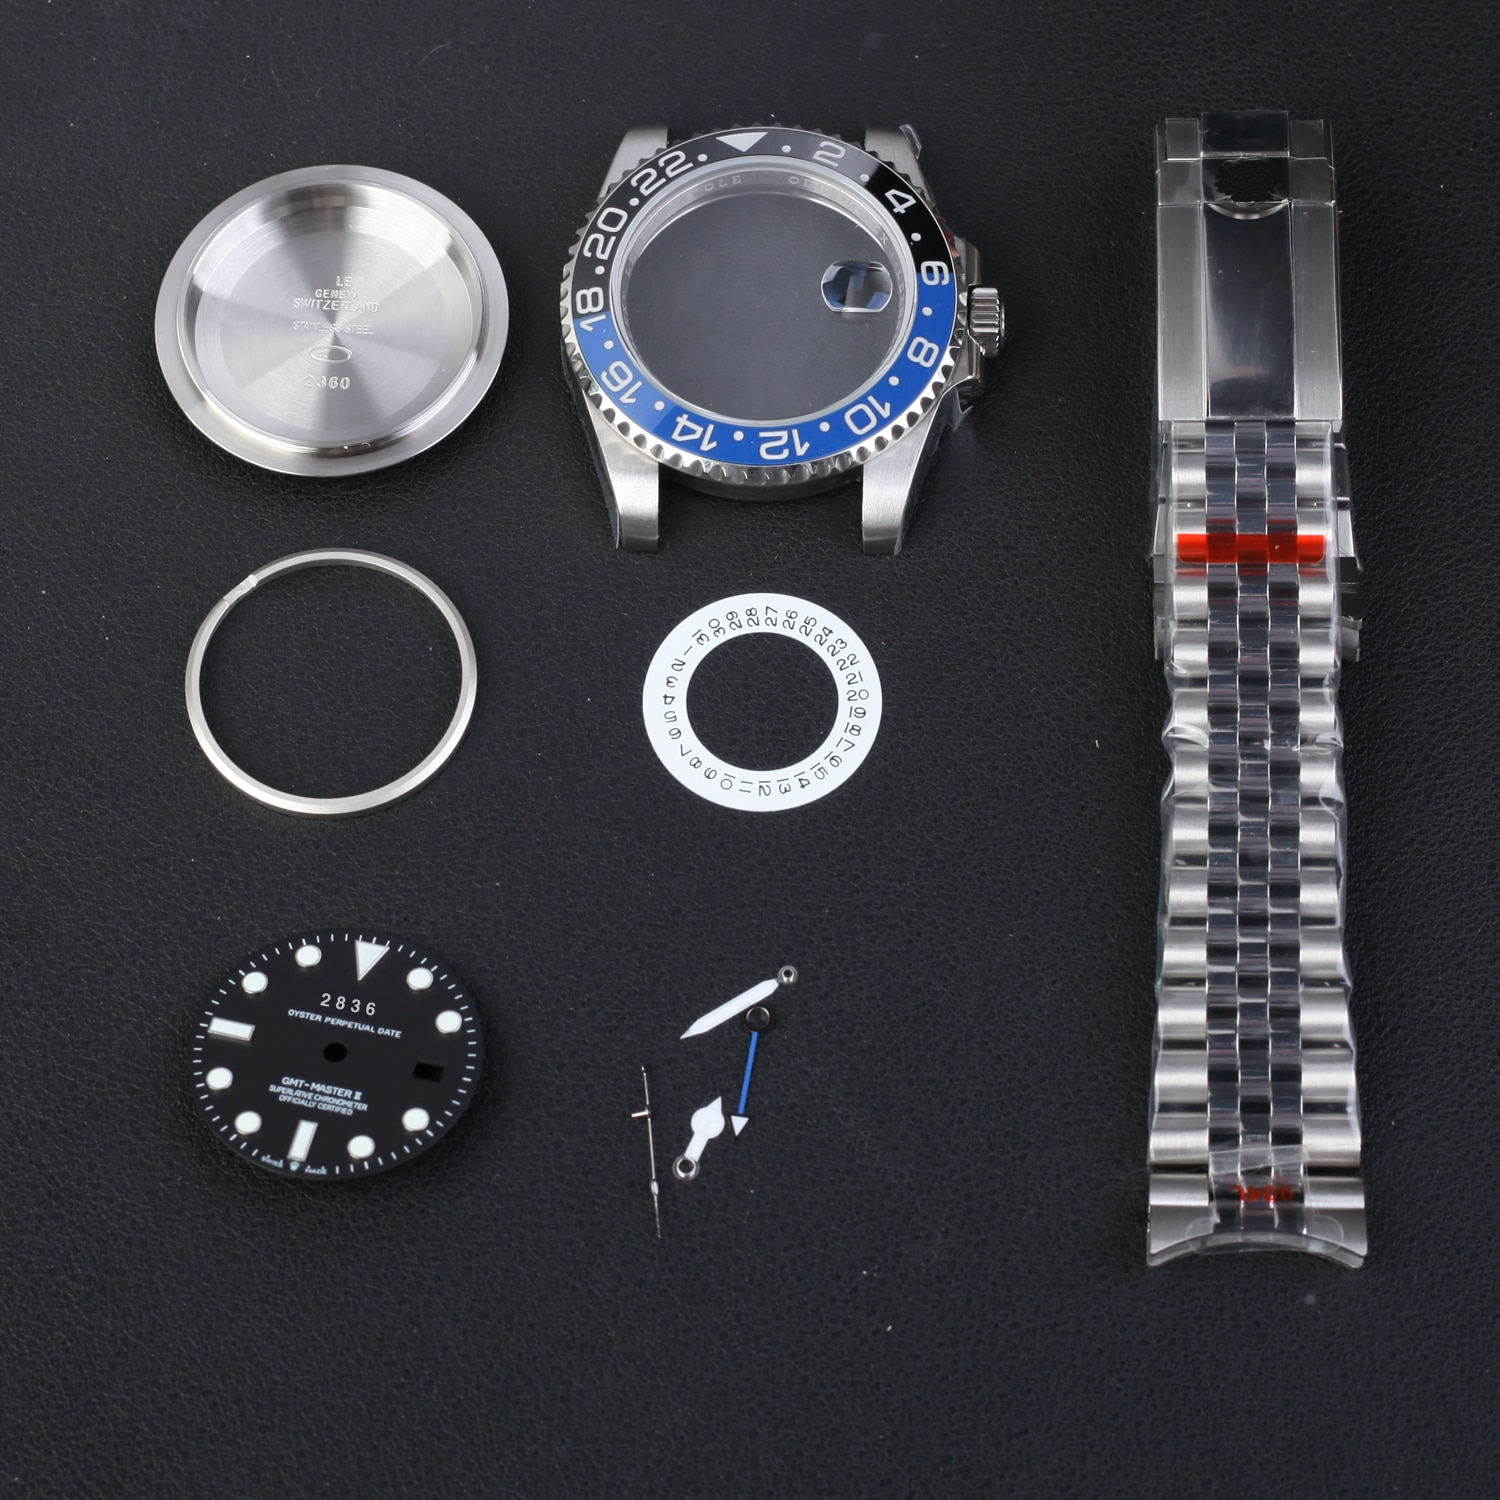 GMT blue and lback ceramic bezel  CASE 904L STEEL FOR WATCH PARTS YM Factroy fit DIIY 2836 4 hands movement